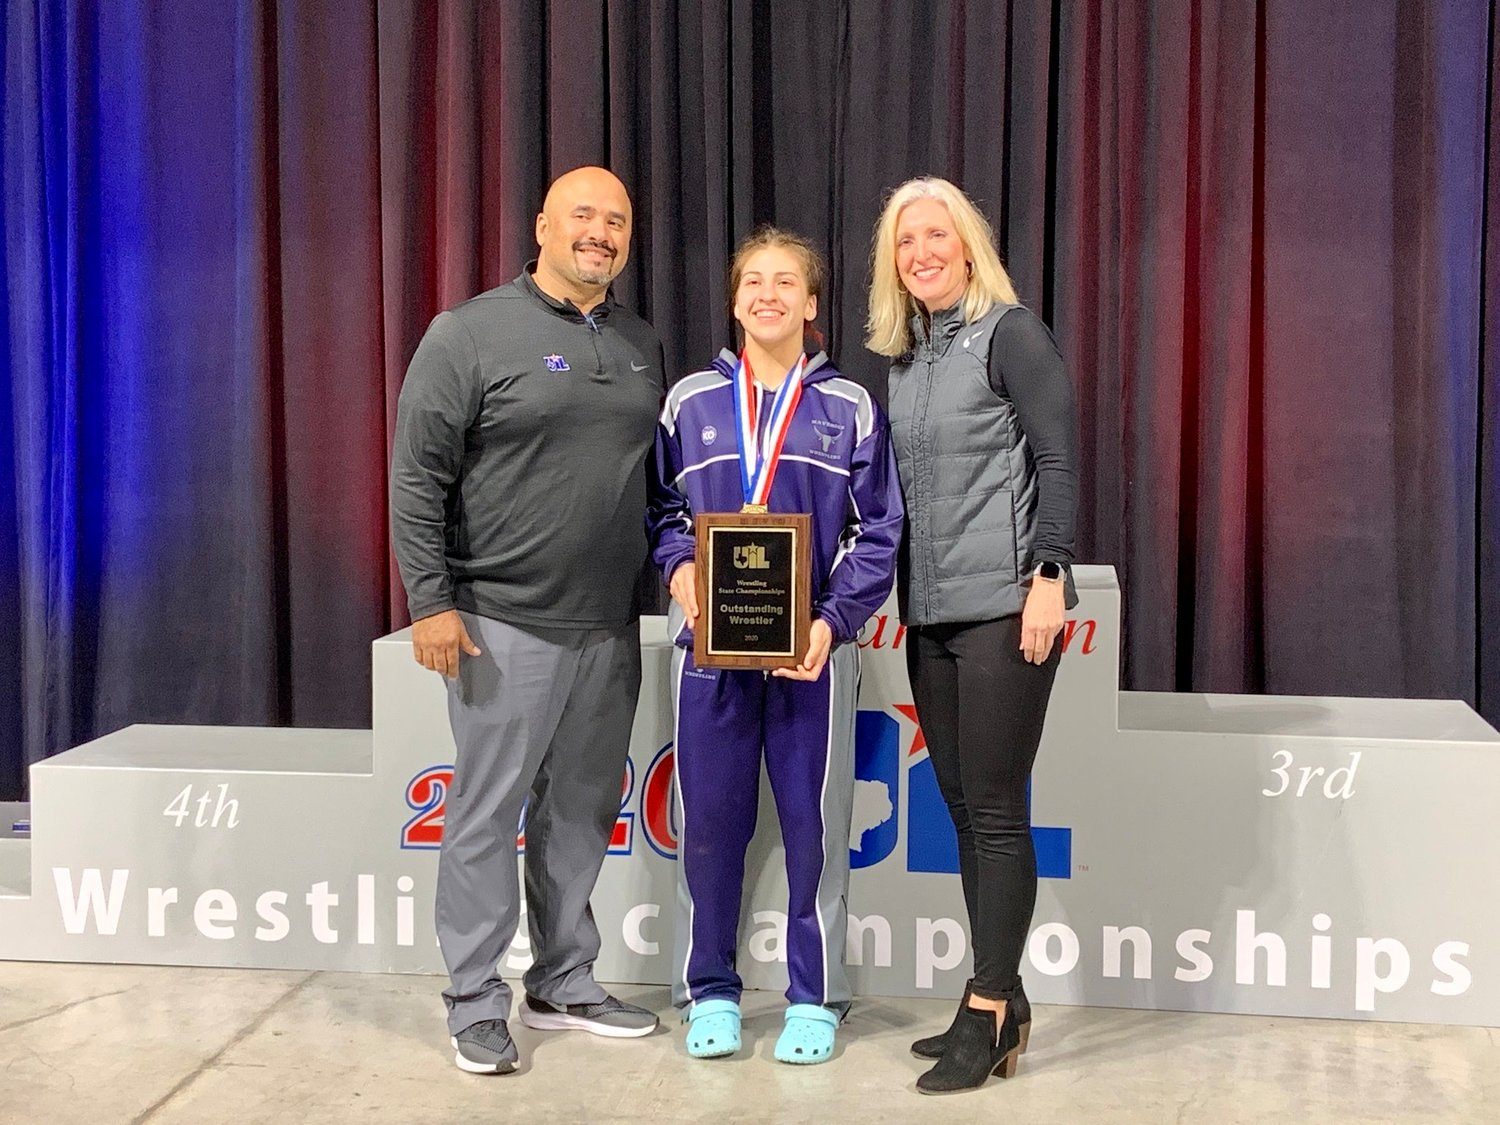 Morton Ranch senior Jordan Suarez won the 138-pound state championship and was named the state tournament's Female Wrestler of the Meet at the UIL Class 6A wrestling tournament on Feb. 22 at the Berry Center in Cypress.